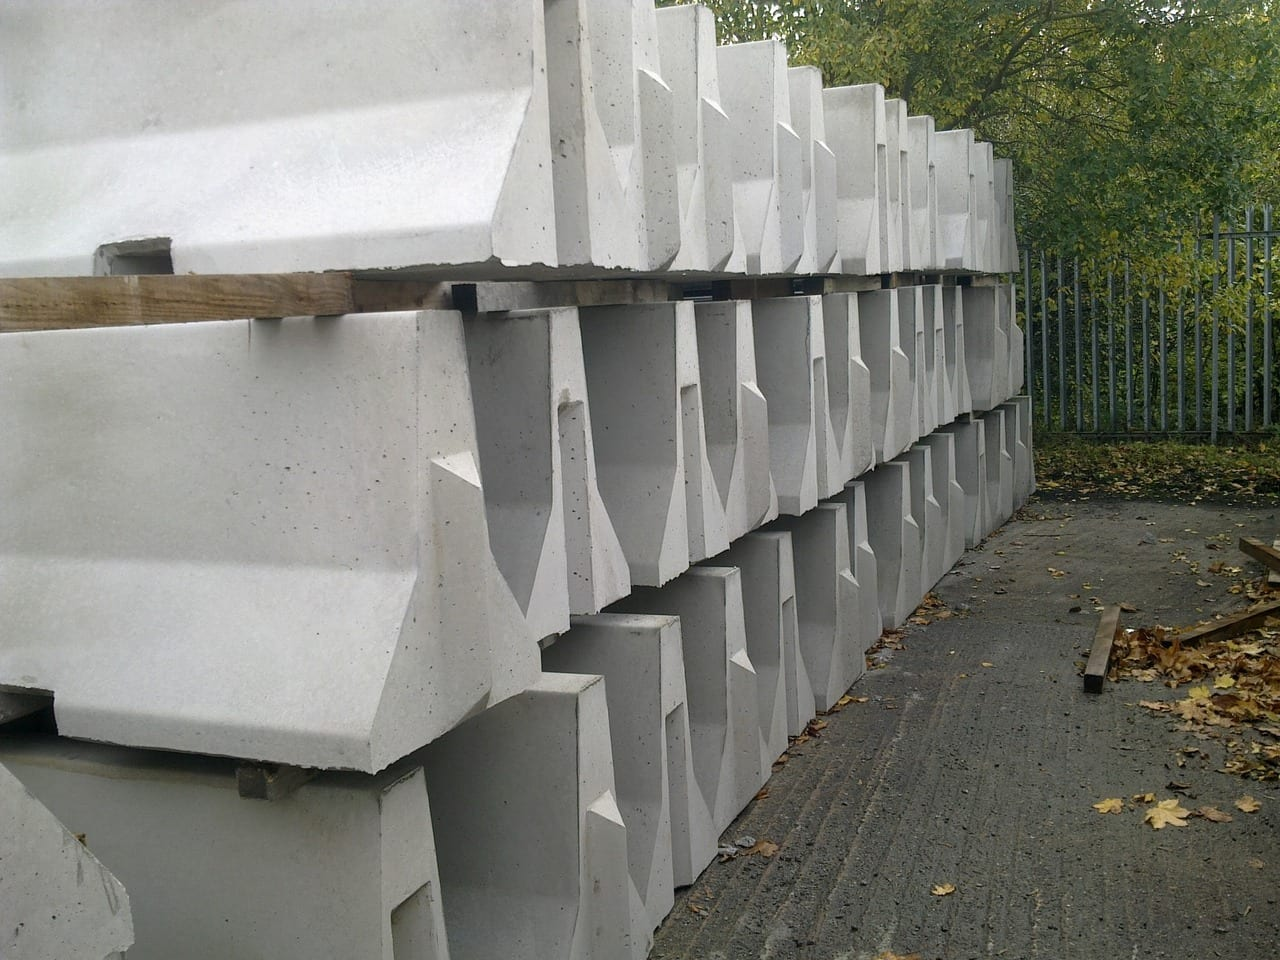 Flawless Design of Jersey Barriers